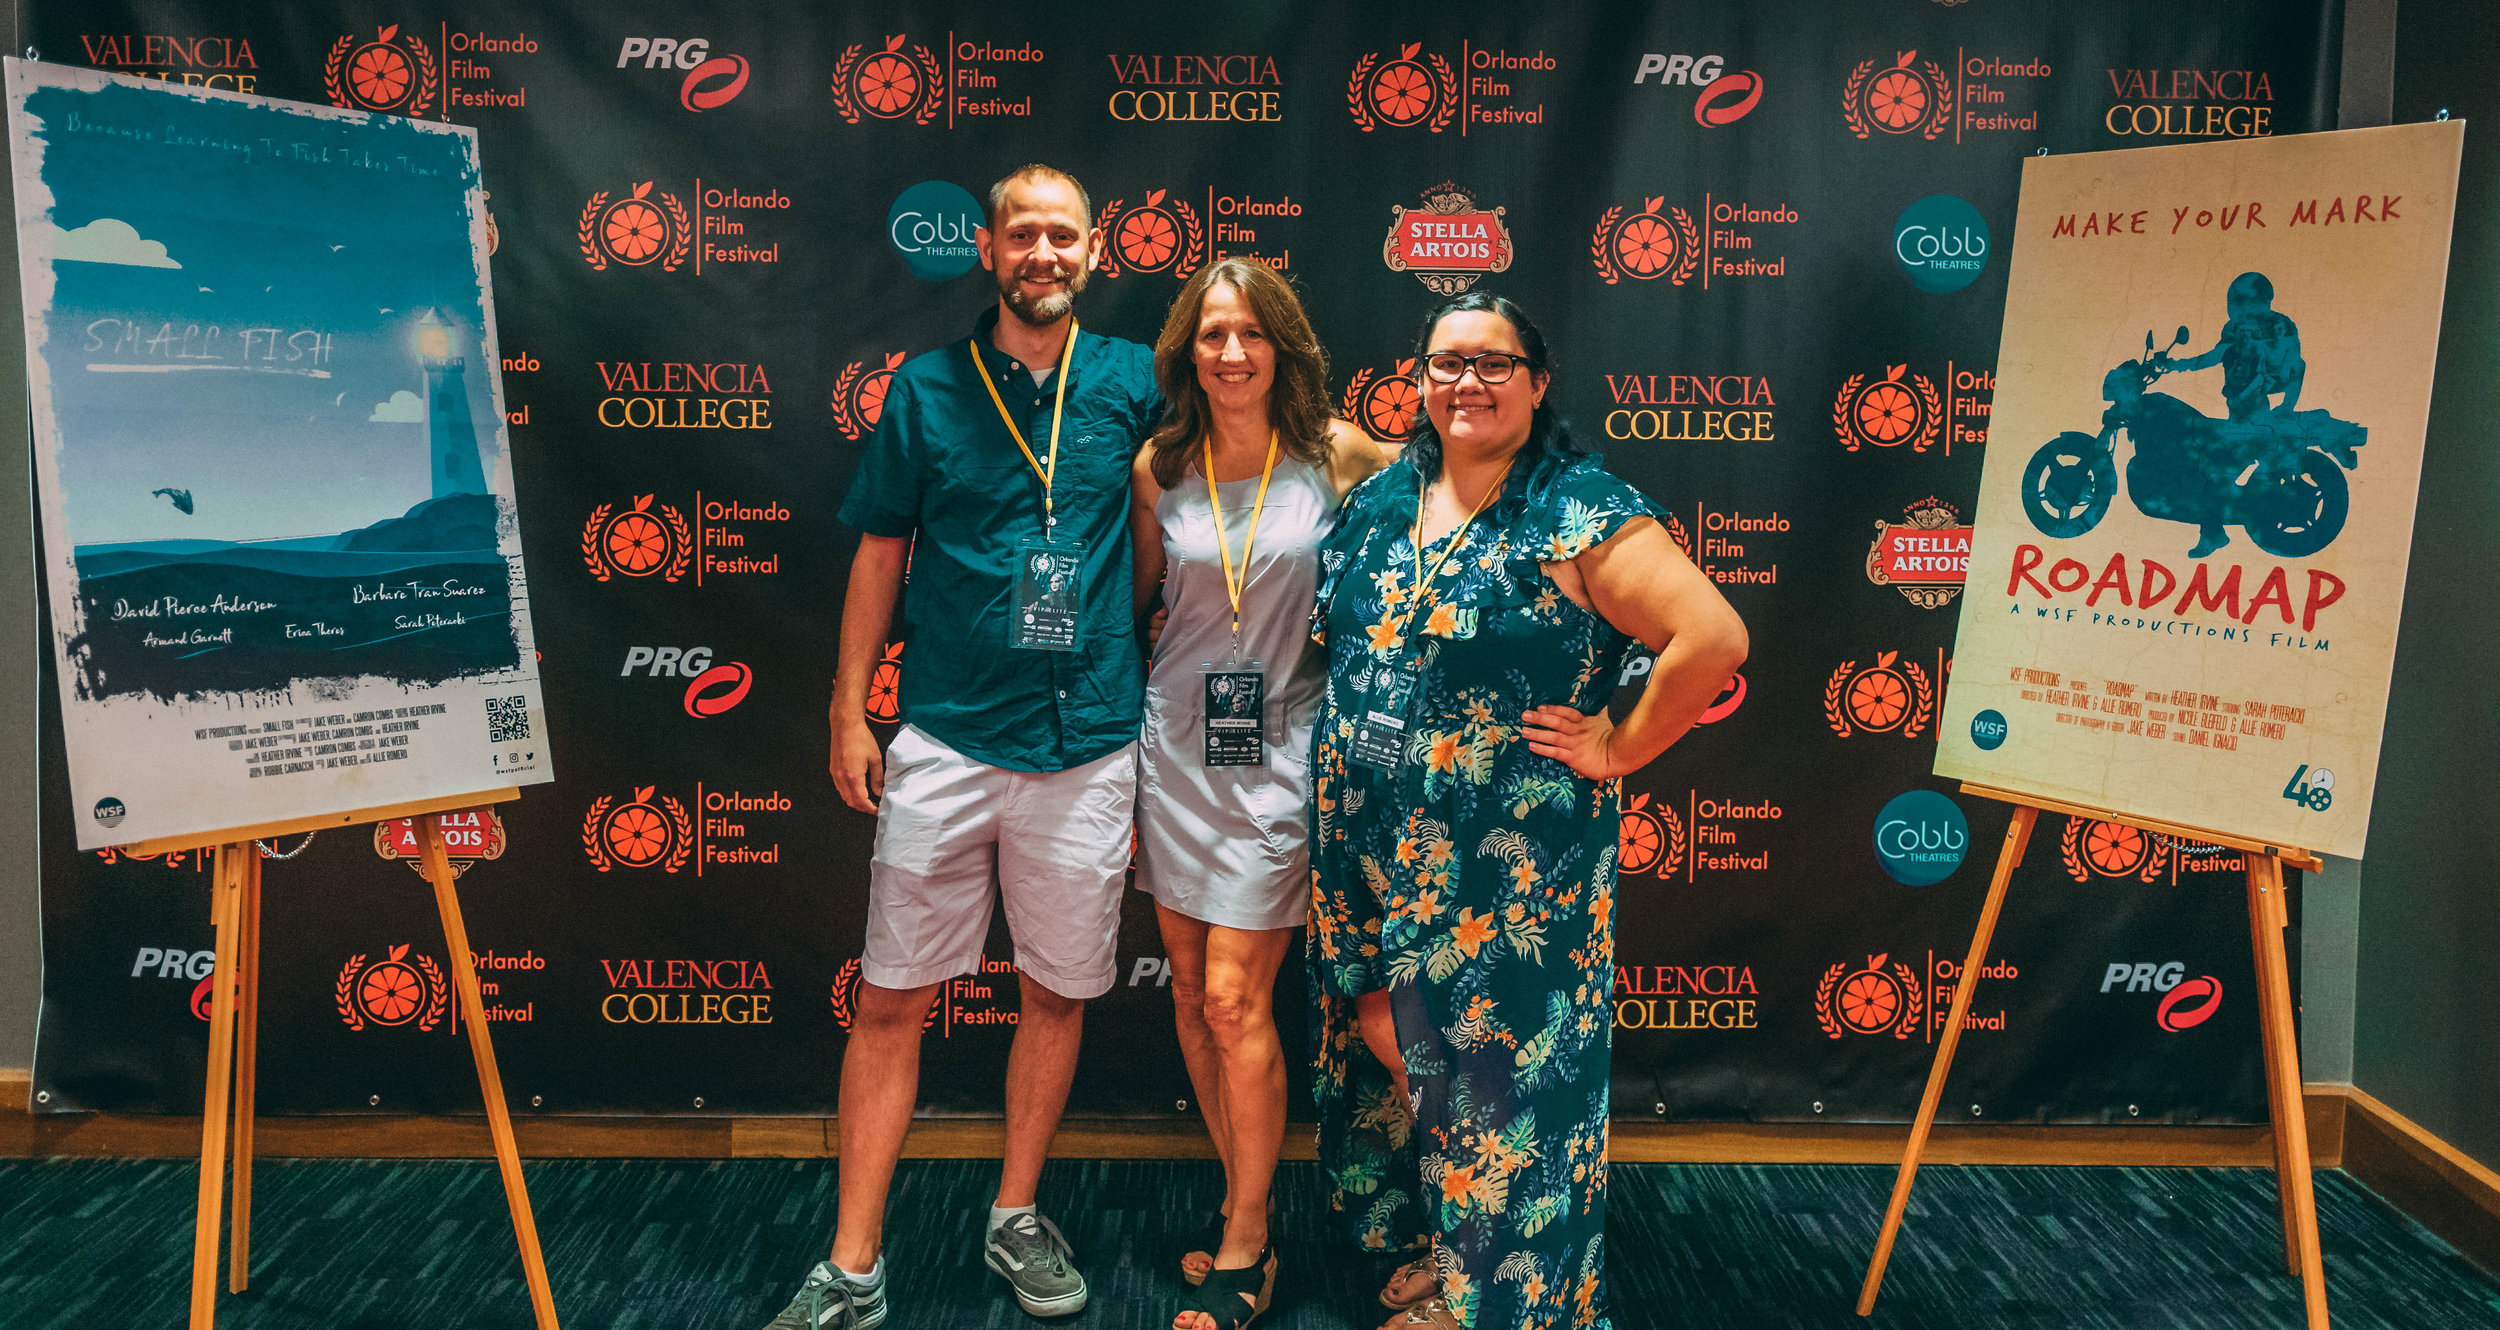 Crew attending the 2018 Orlando Film Festival for the screenings of both  Small Fish  and  Roadmap